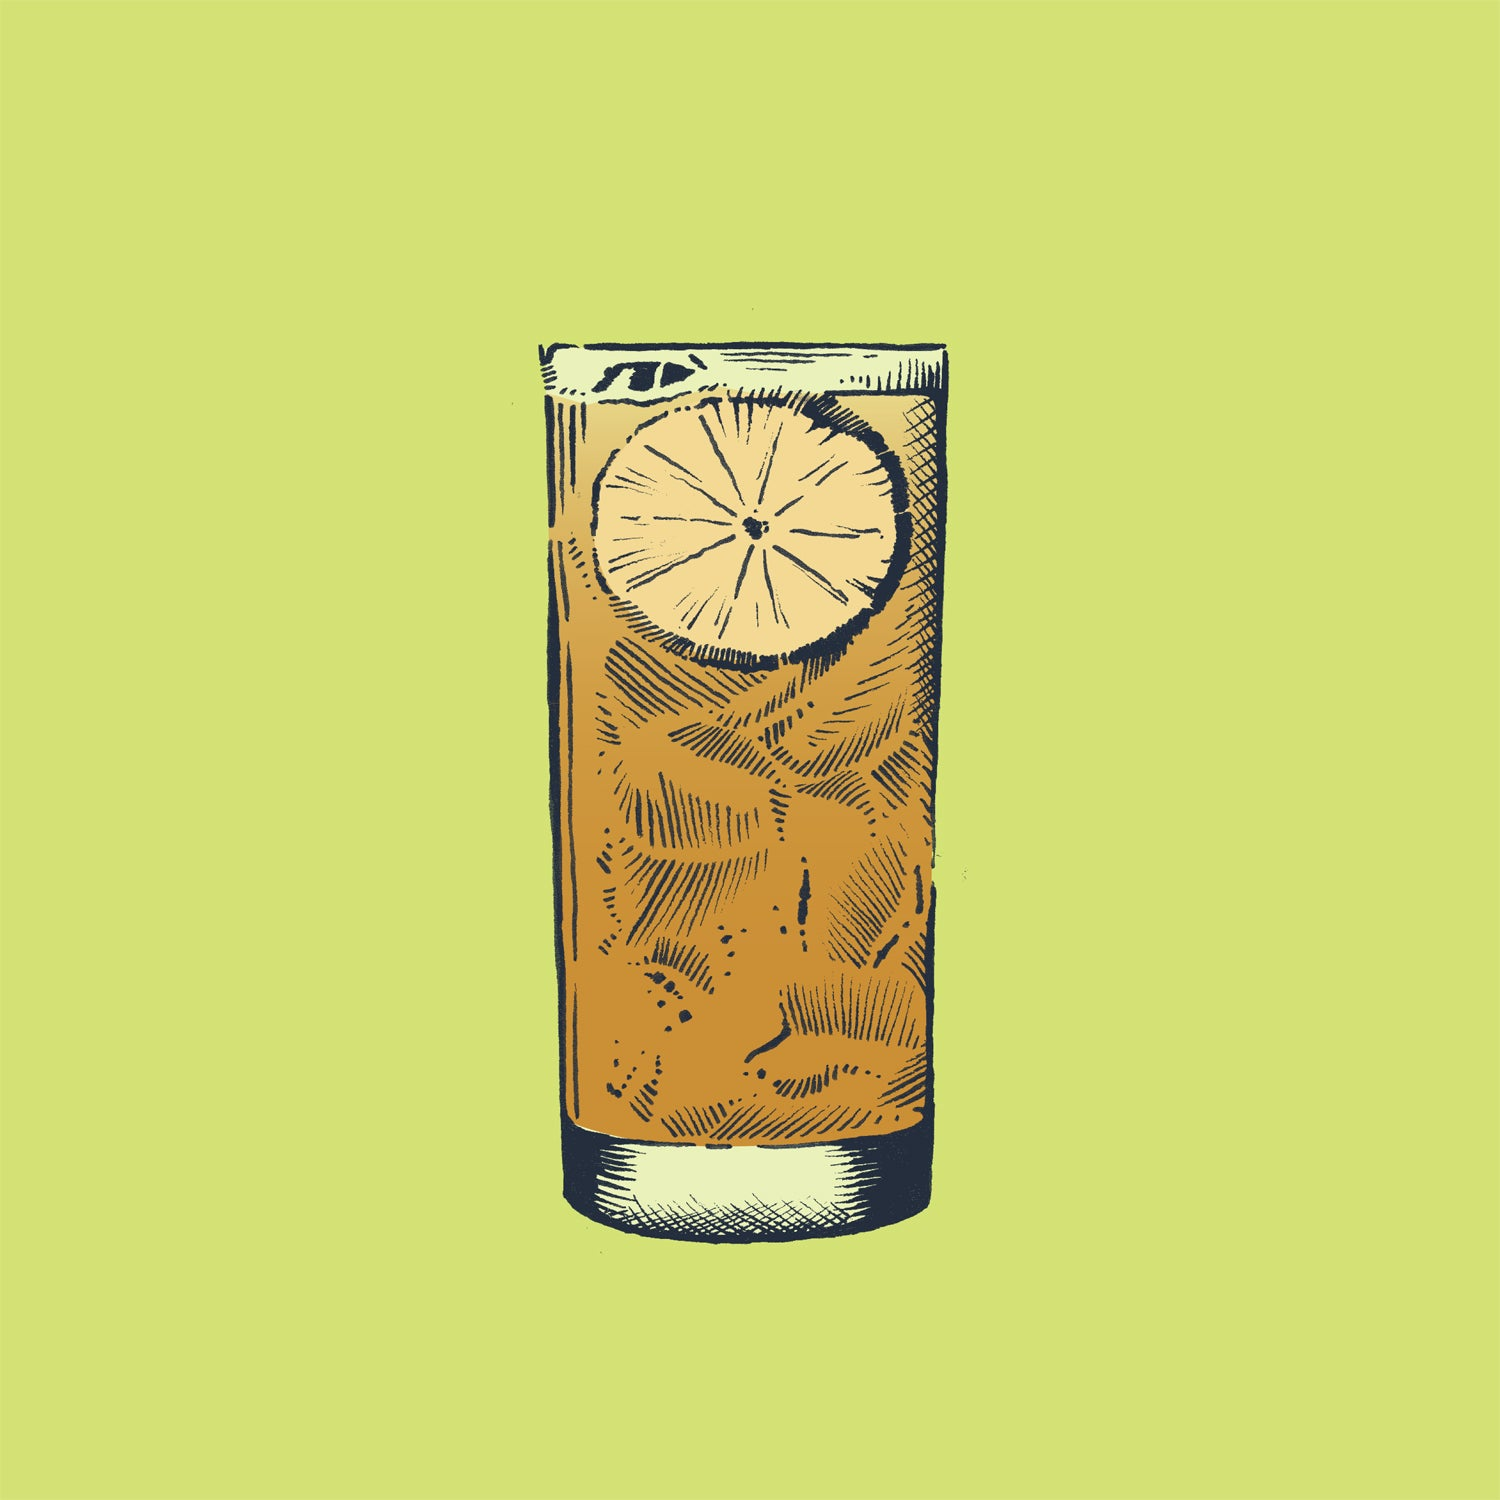 This recipe comes courtesy of Kyle Reutner, a mixologist in Honolulu, where it is truly always sunny. Reutner also owns the Hawaii Bitters Company, so bitters make appearances in lots of his drinks. This one uses a sweet syrup called falernum, which you may have to order over the Internet. Yeah, you can leave it out, but trust us; it's better if you leave it in.Ingredients:2 oz Kohana Agricole Rum1/2 oz lime1/2 oz falernum (optional but delicious)craft ginger beerMethod:Fill a tall glass with ice. Pour each ingredient into the glass then add an ounce or two of craft ginger brew. Stir gently and garnish with a lime wheel.